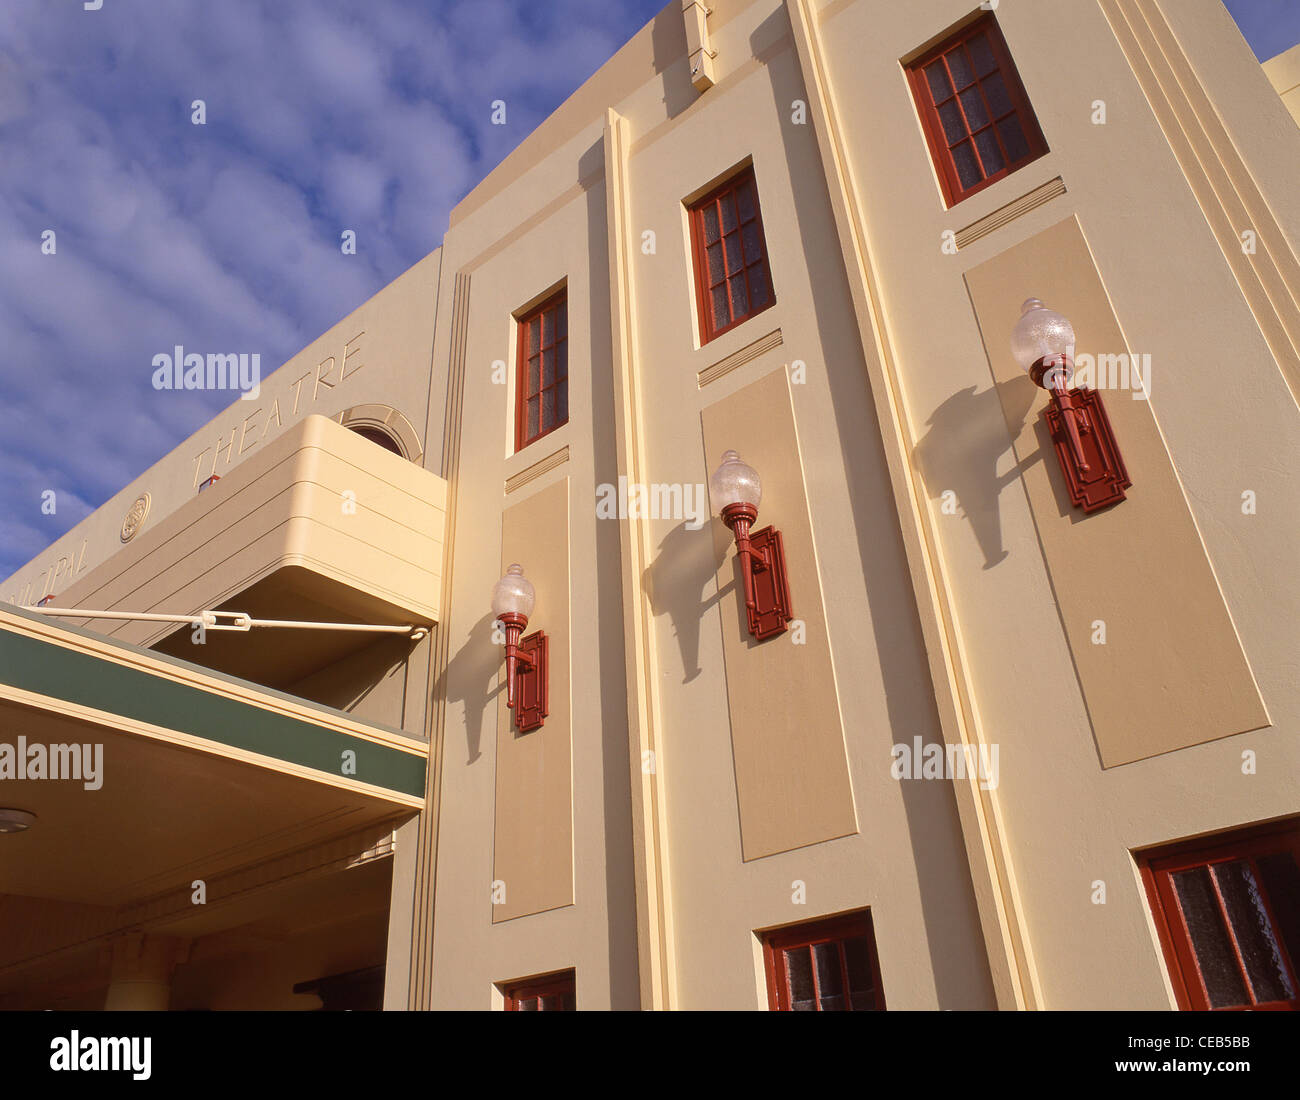 The Art Deco Municipal Theatre, Tennyson Street, Napier, Hawke's Bay, North Island, New Zealand - Stock Image